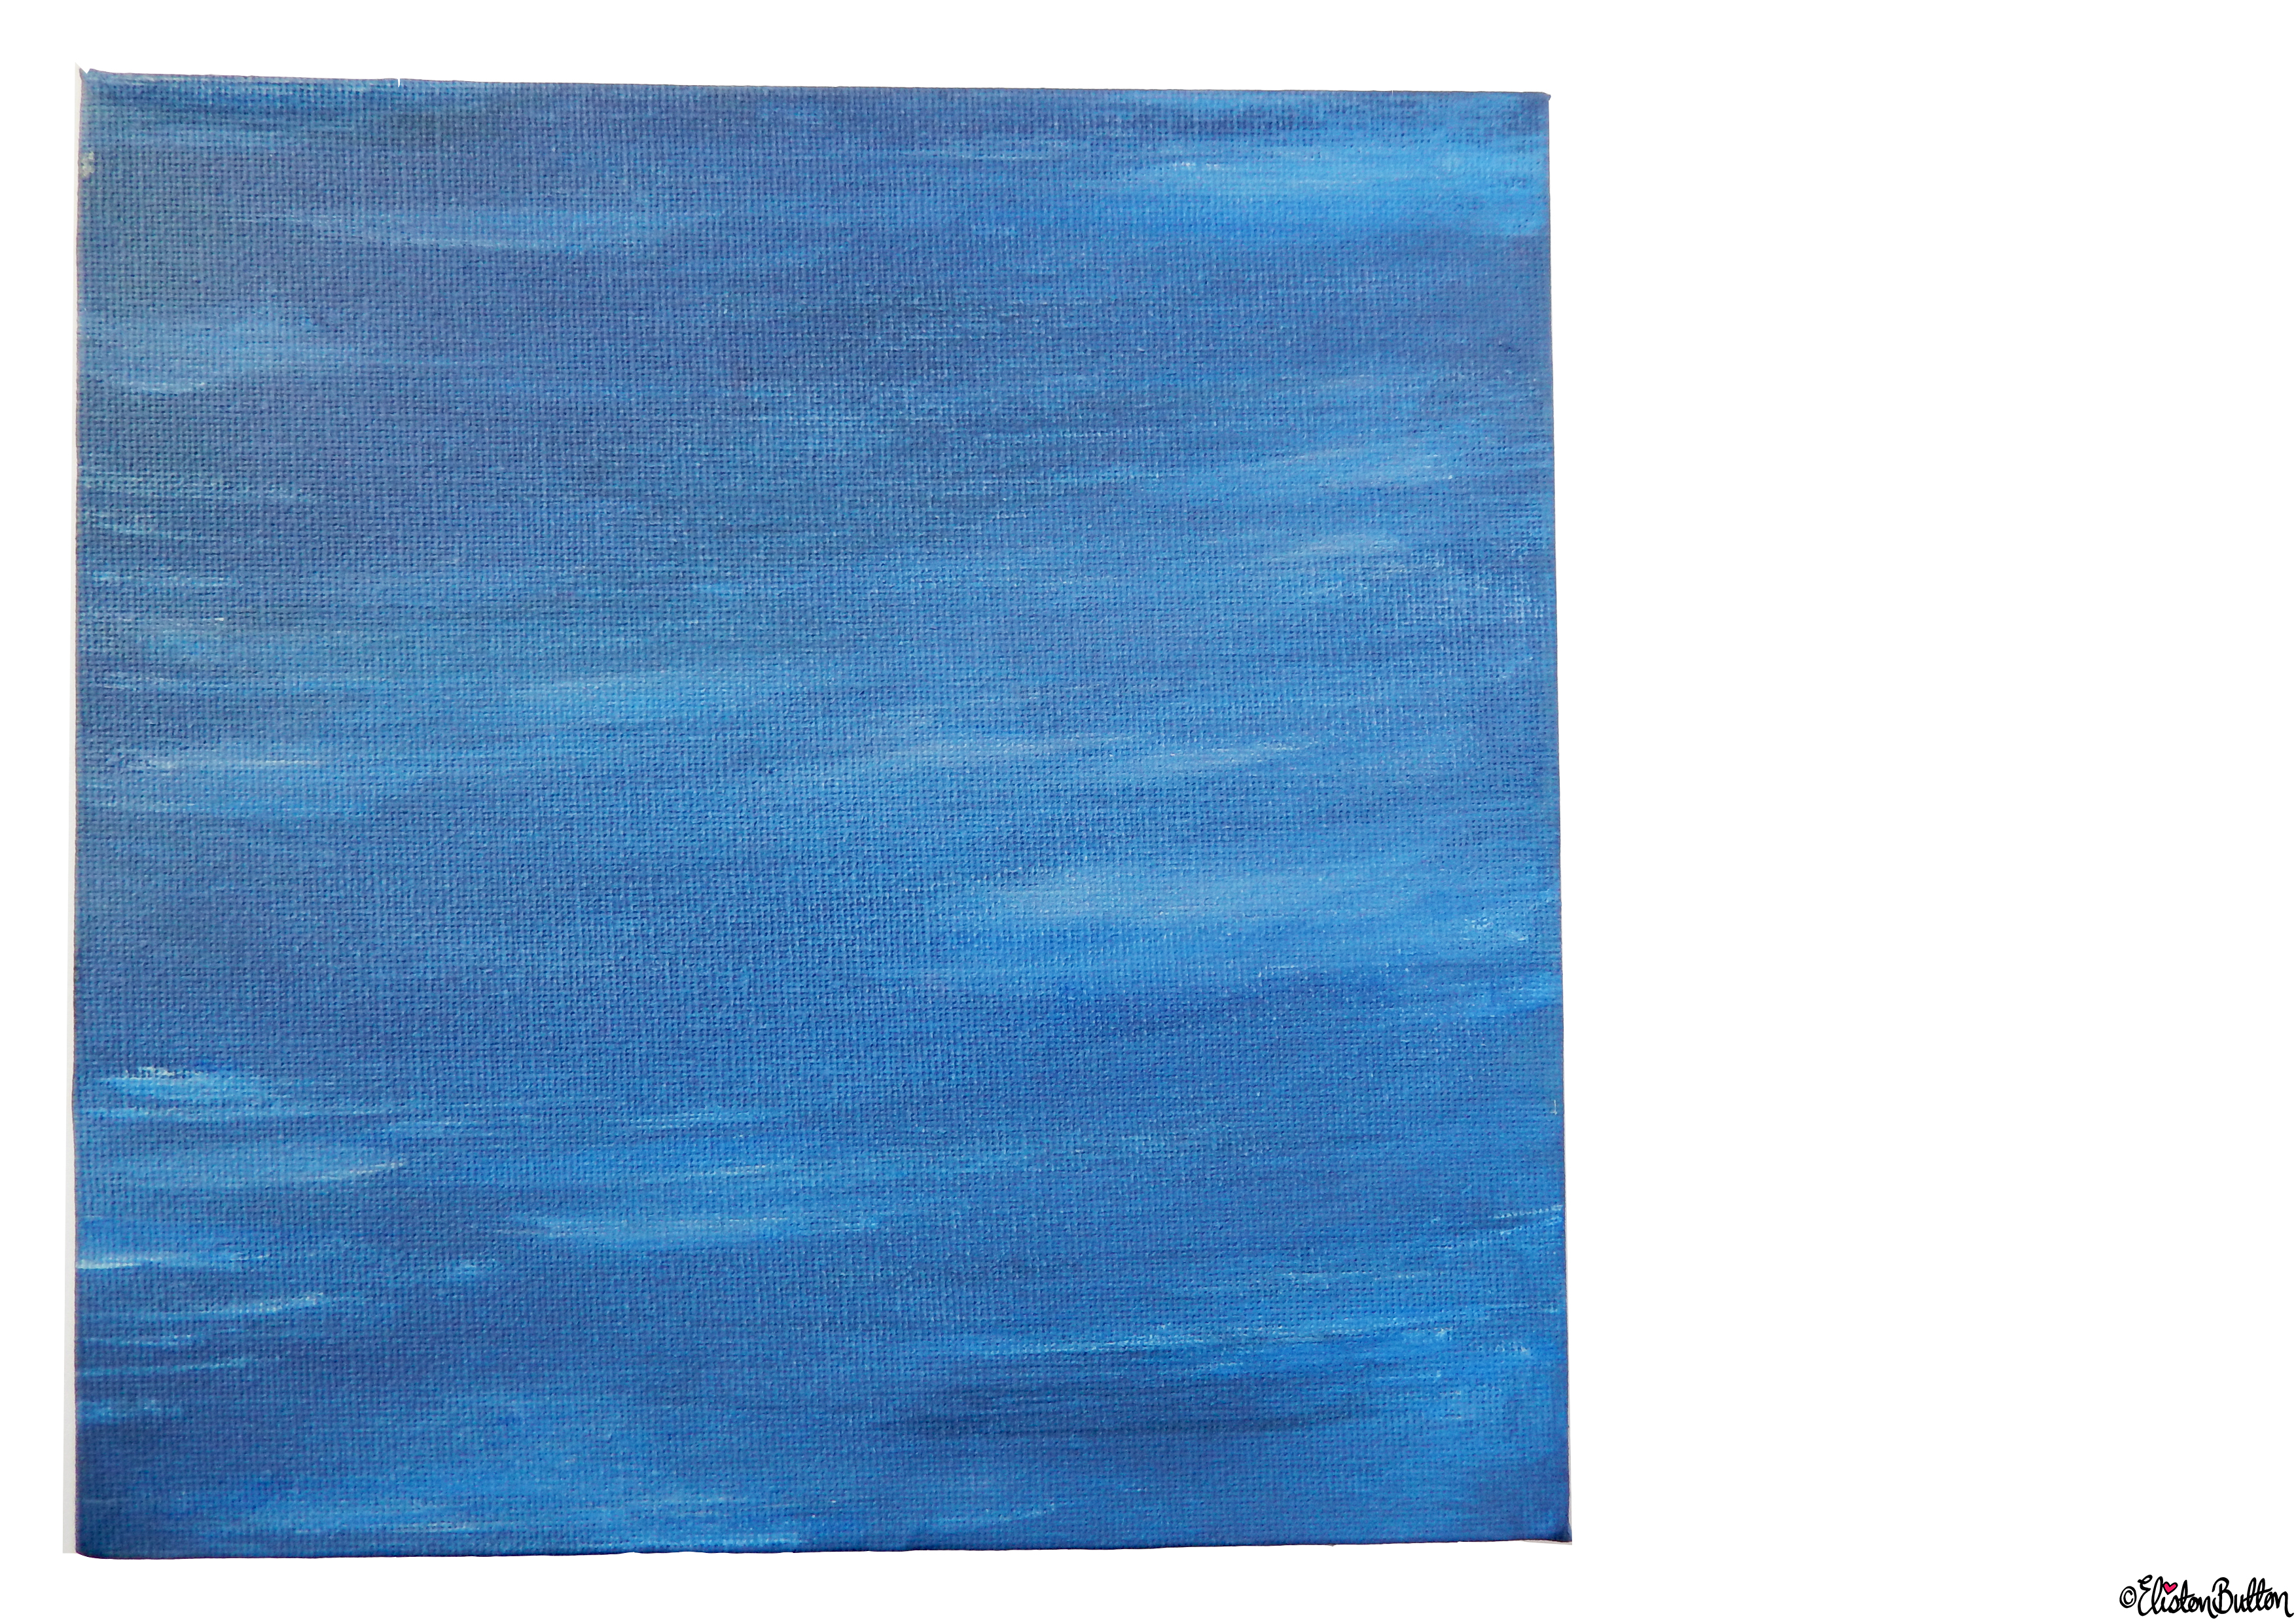 Calm Waters Painted Canvas - Full Front View - Create 28 - No. 16, 17 & 18 - Sea and Sky Painted Canvases at www.elistonbutton.com - Eliston Button - That Crafty Kid – Art, Design, Craft & Adventure.